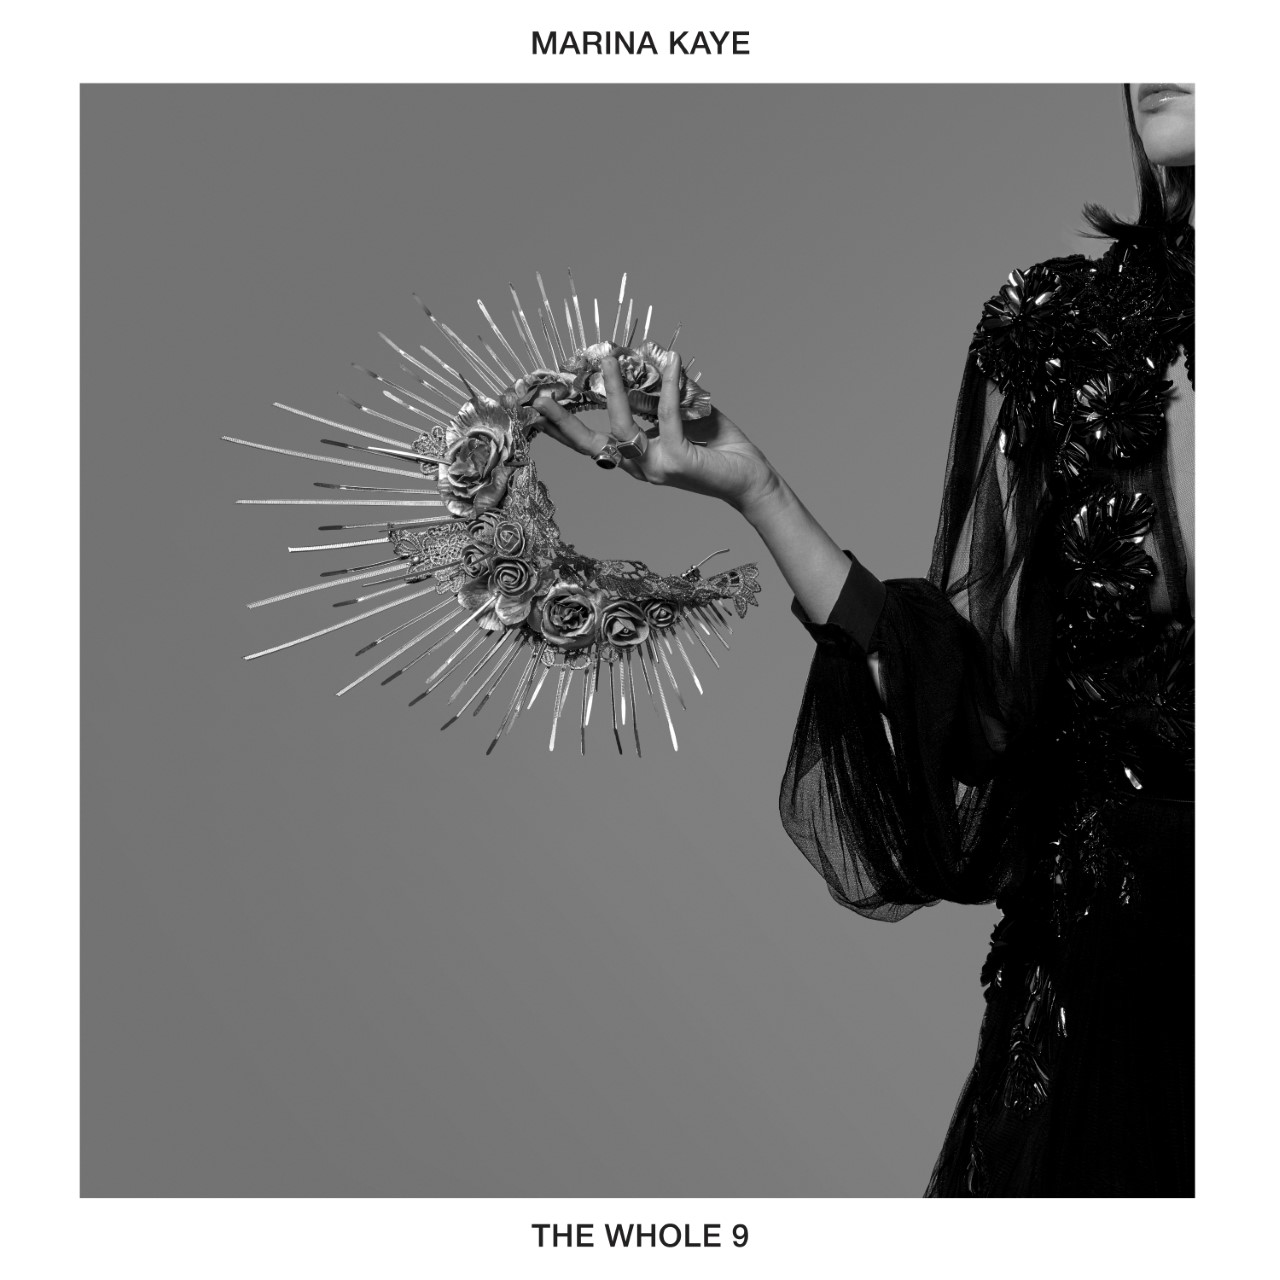 Marina Kaye - The Whole 9